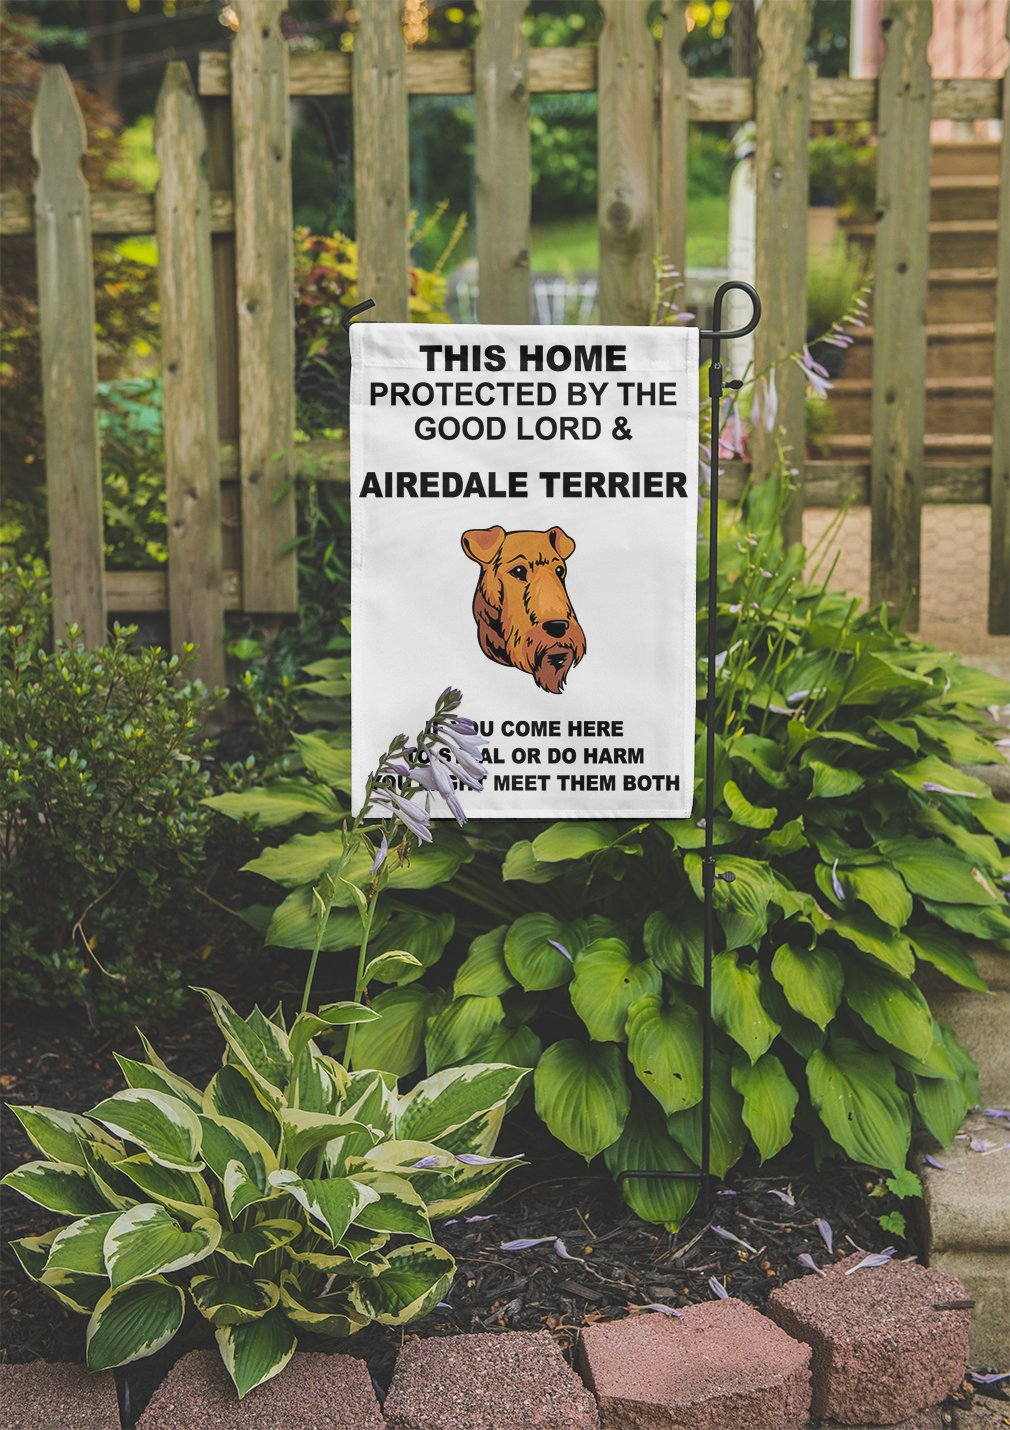 Home protected Good Lord AIREDALE TERRIER DOG Meet Both Yard House Garden Flag Flag Only 10 1/2'' x 16''